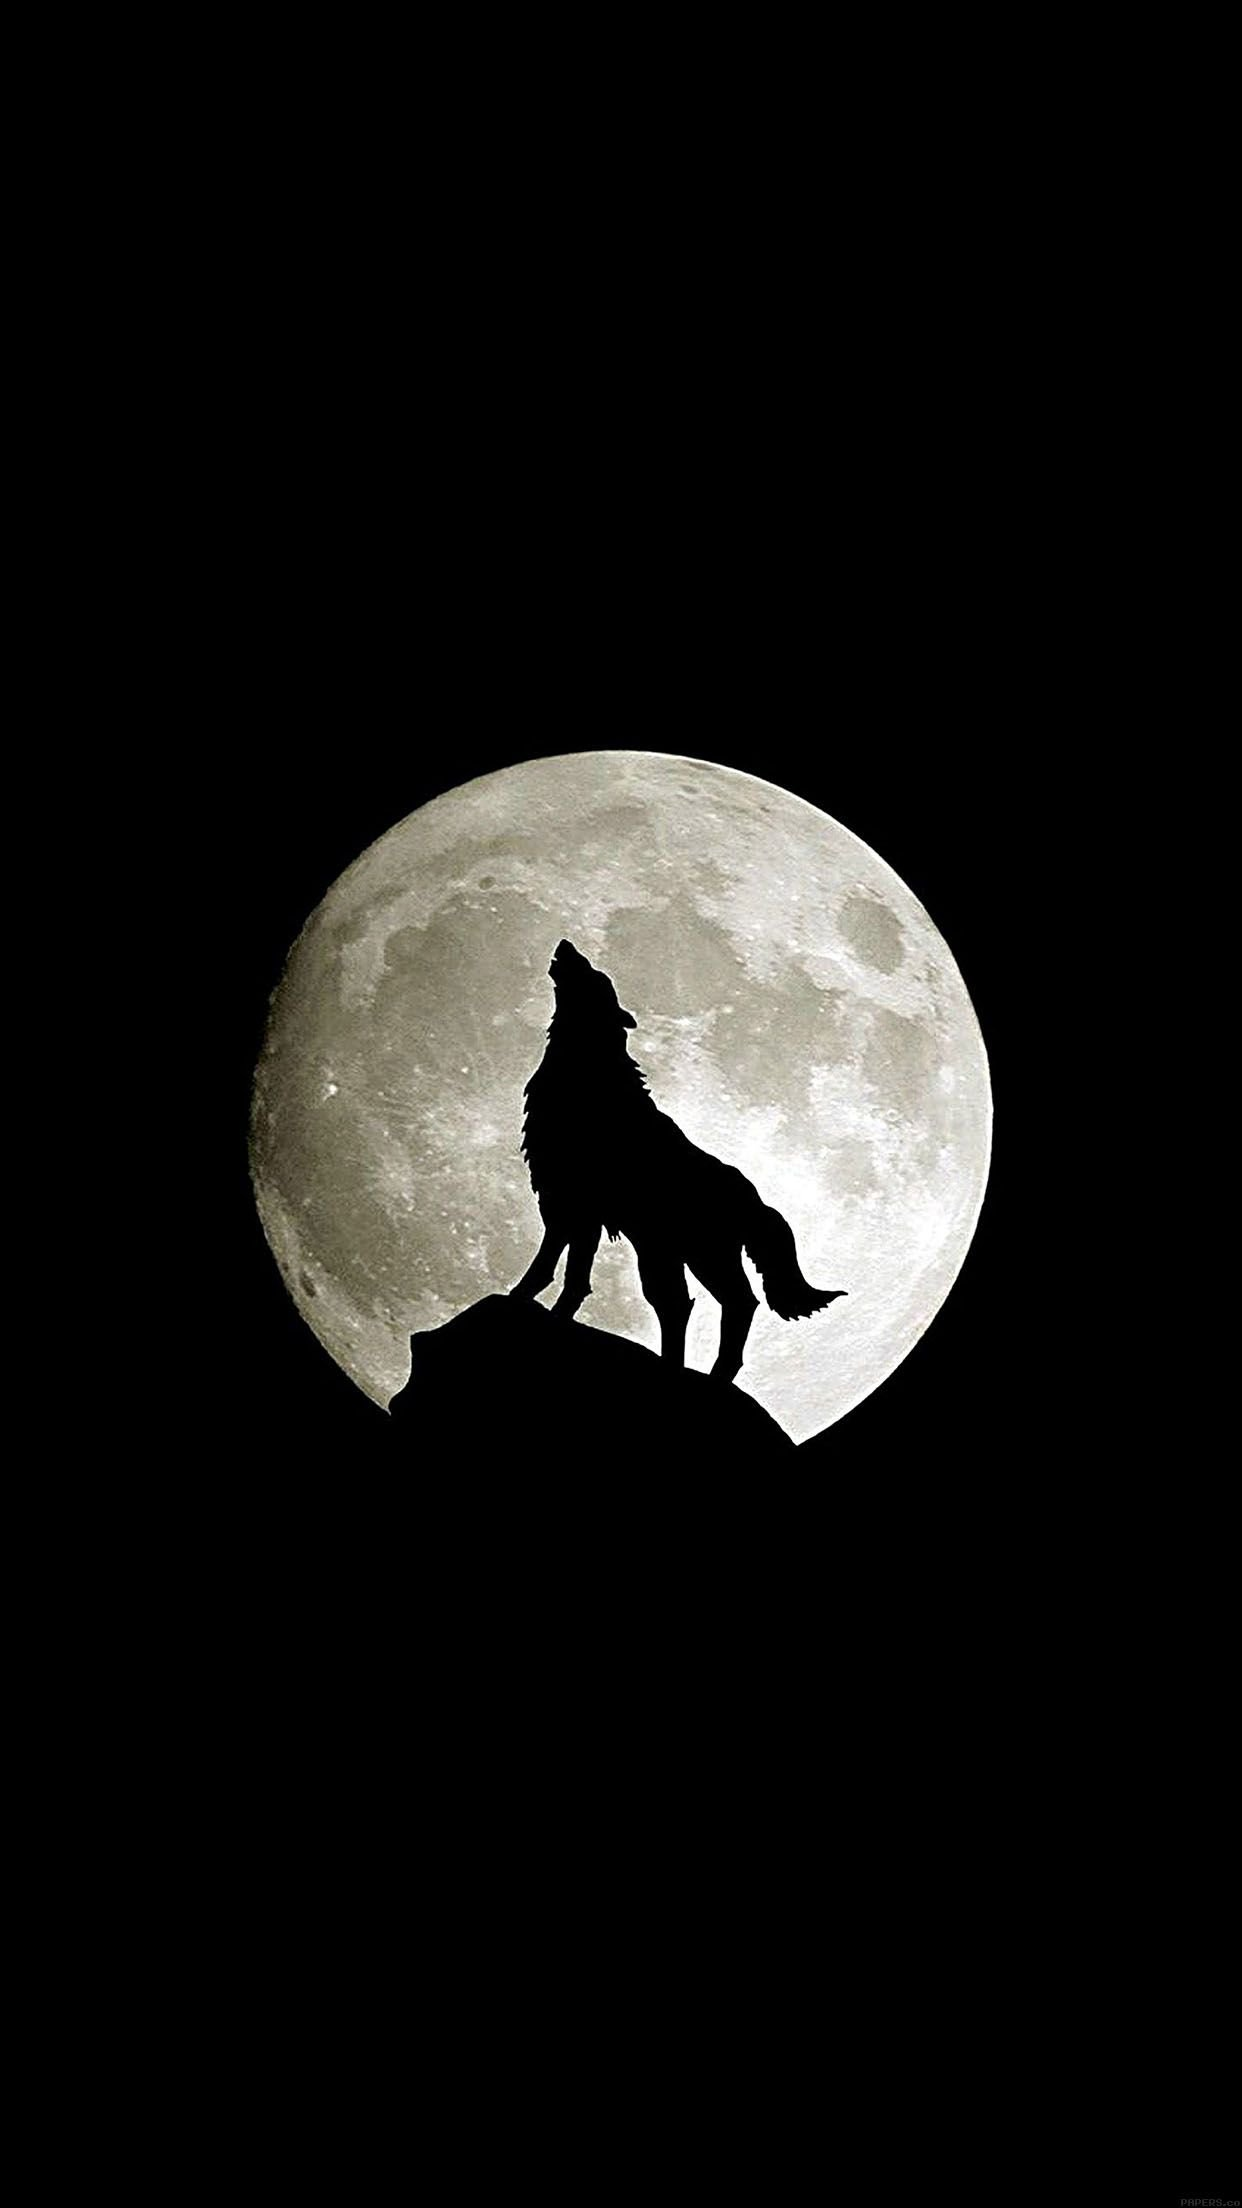 Black Wolf Iphone Wallpapers Top Free Black Wolf Iphone Backgrounds Wallpaperaccess